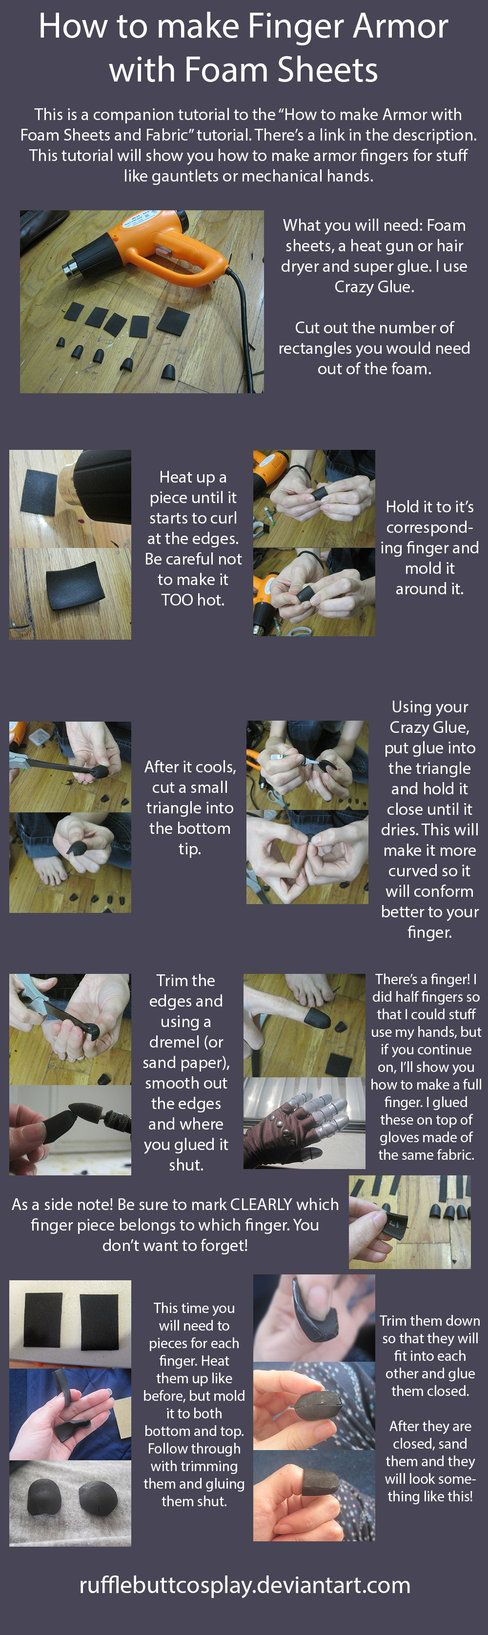 "This is a companion tutorial to ""How to make Armor with Foam Sheets and Fabric""."